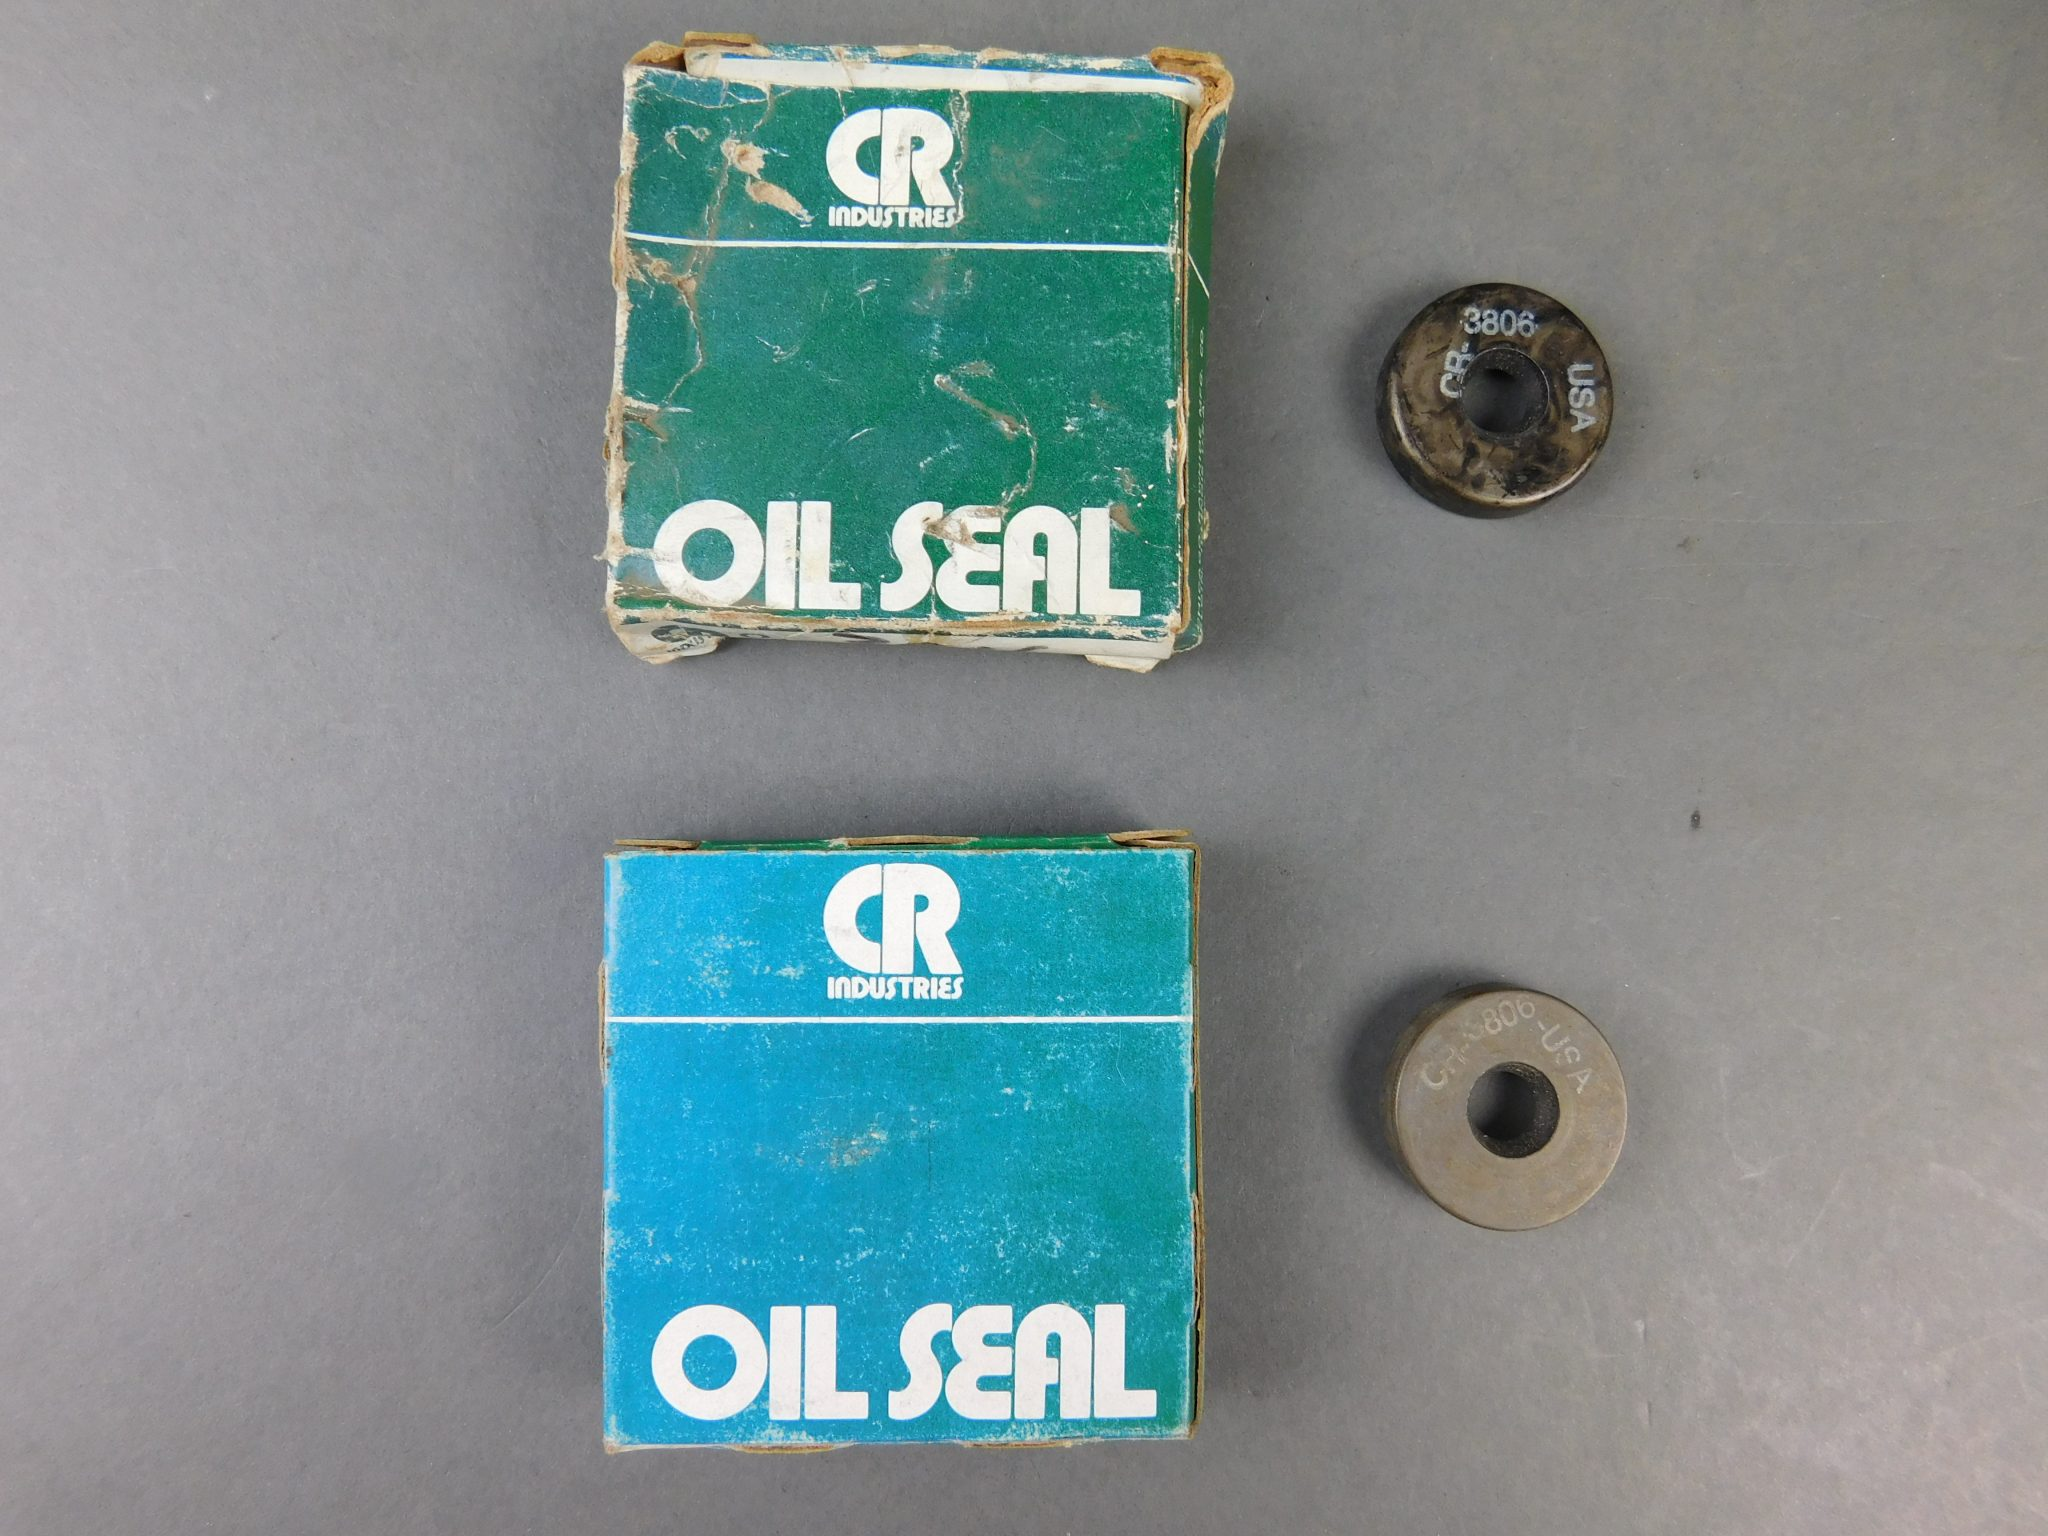 *Lot of 2* Chicago Rawhide 3806 Oil Seals, 1-1/8